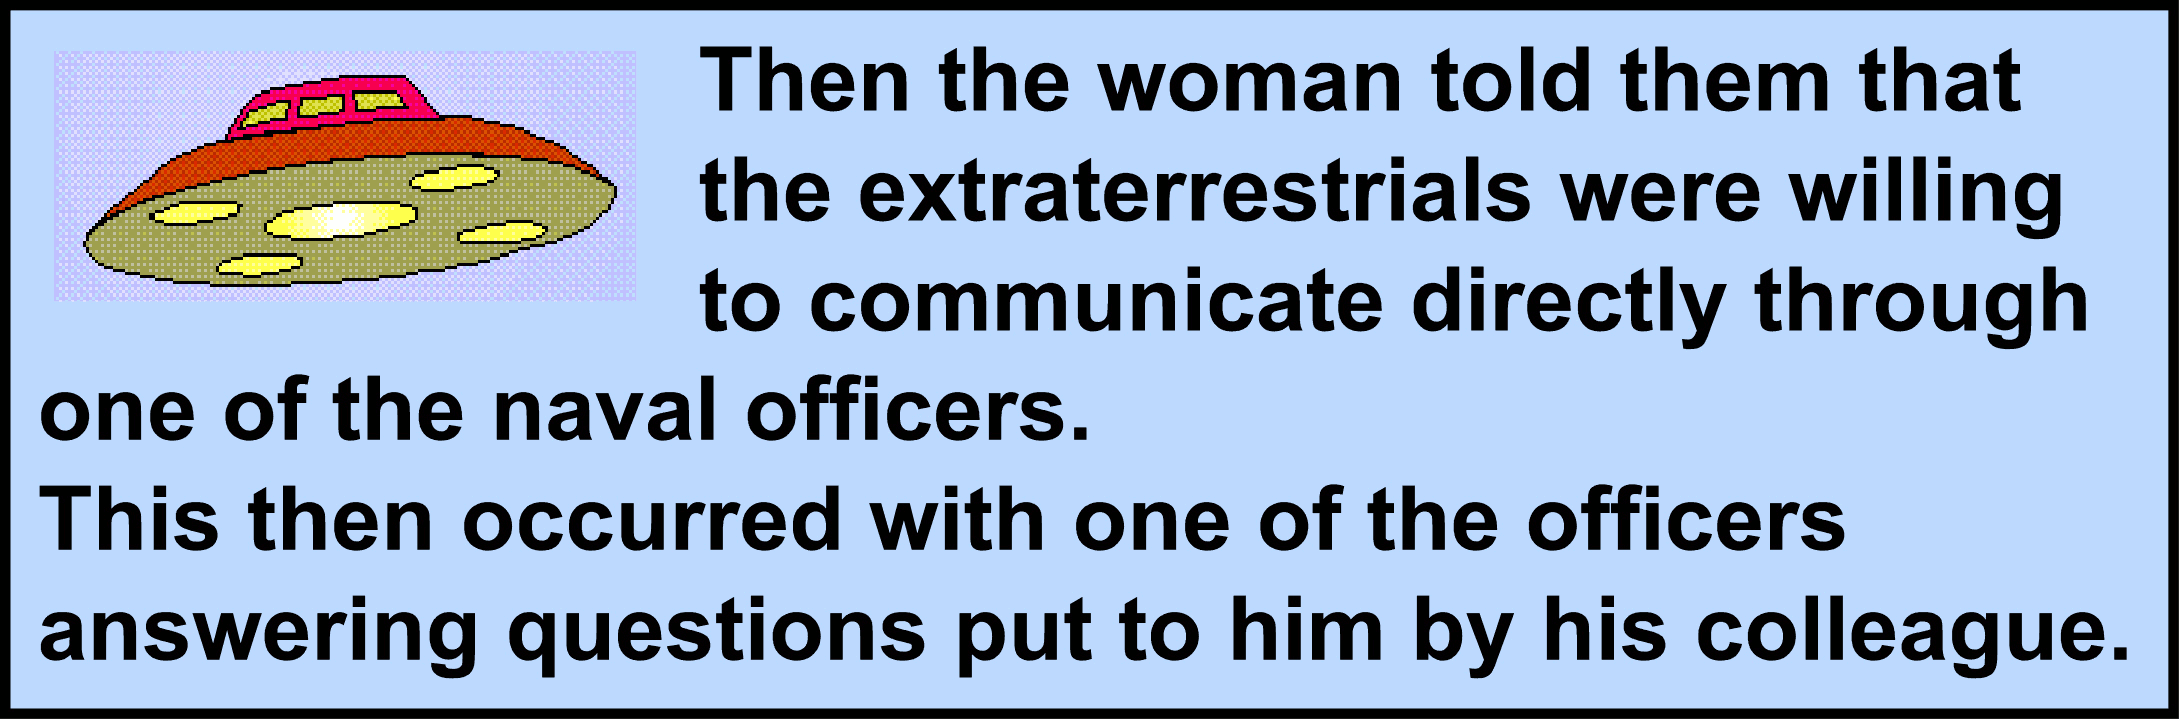 Image:Then the woman told them that the extraterrestrials were willing to communicate directly through one of the naval officers. This then occurred with one of the officers answering questions put to him by his colleague.